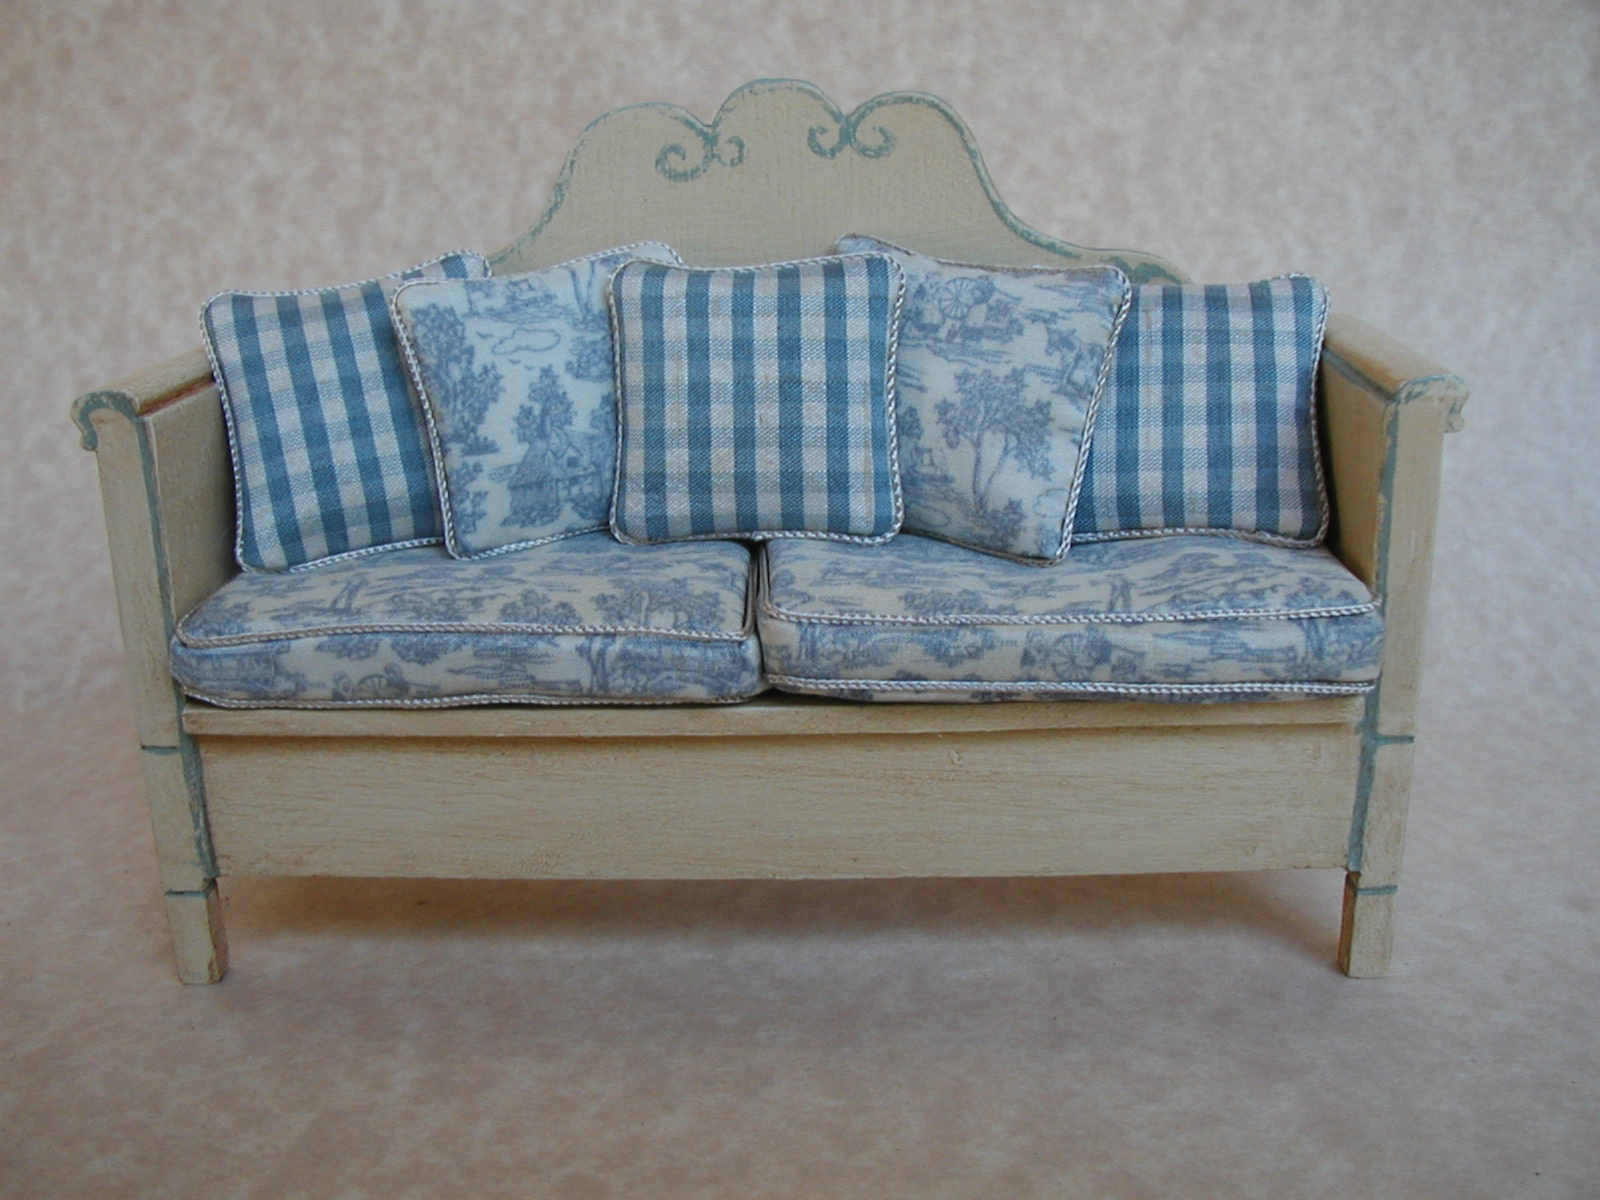 FRENCH BENCH - BLUE